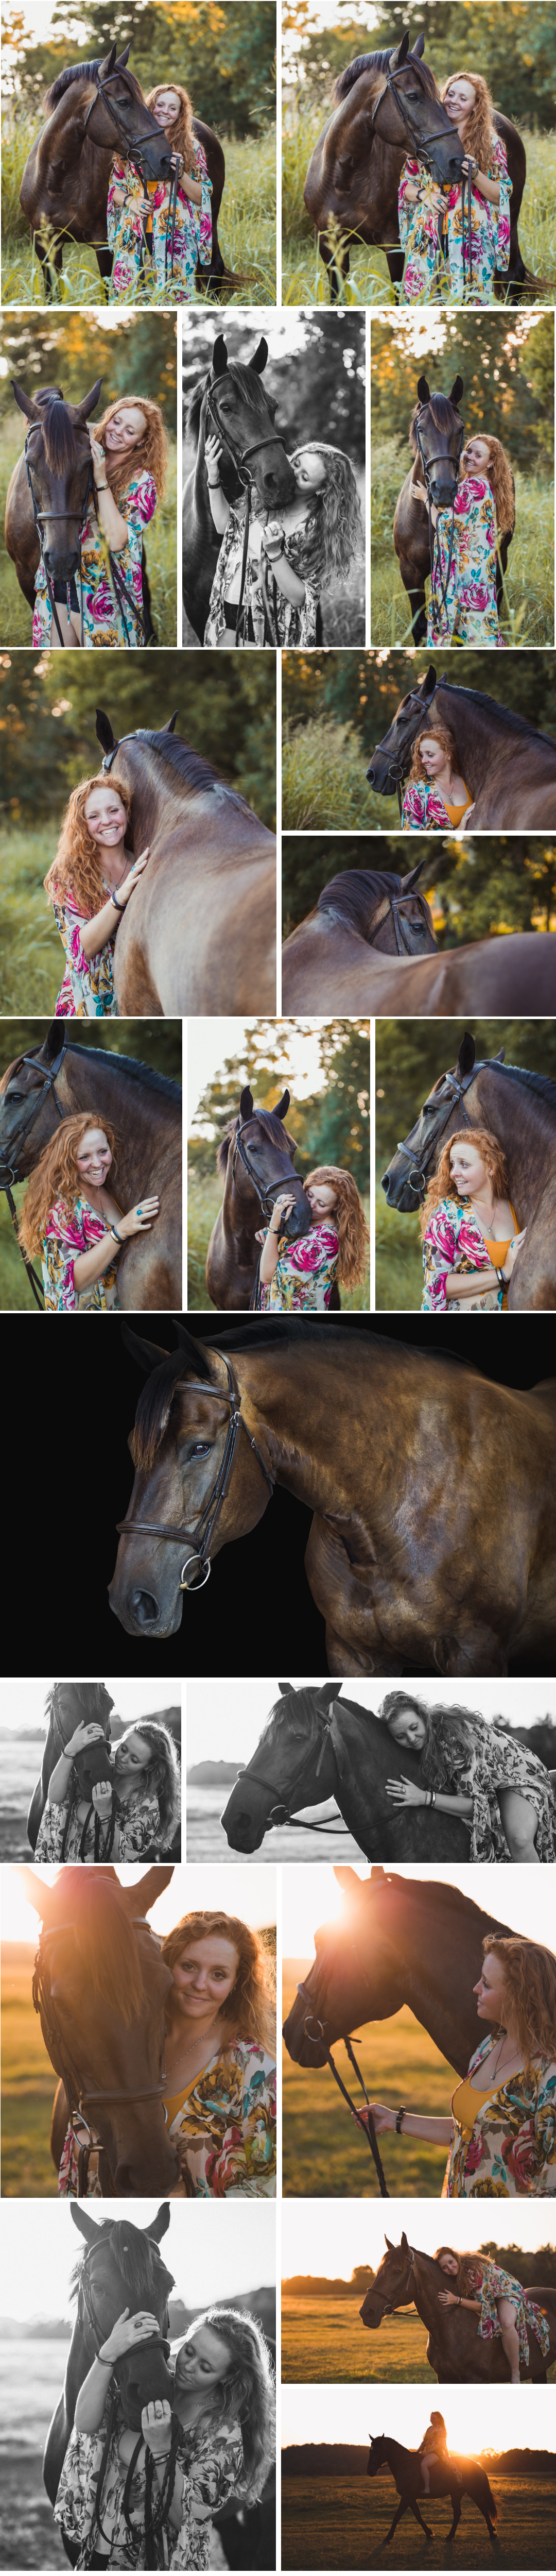 Equine photography in Fayetteville Arkansas, horse photography